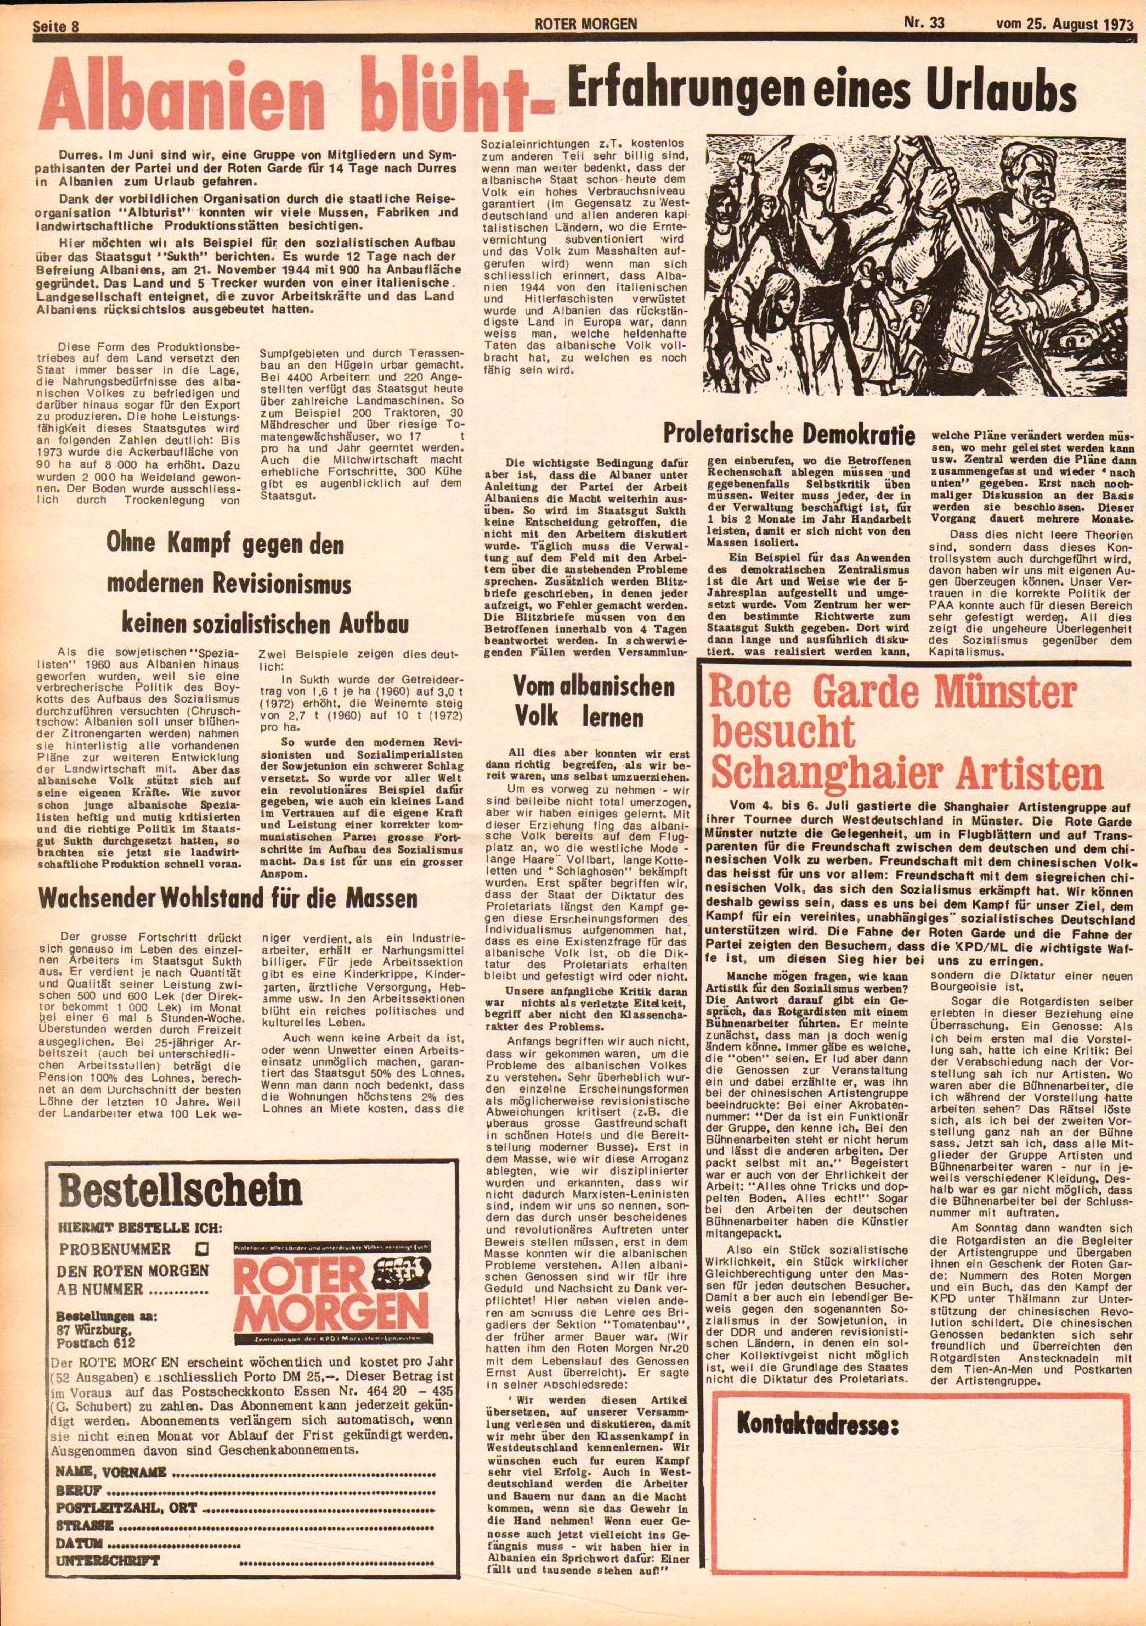 Roter Morgen, 7. Jg., 25. August 1973, Nr. 33, Seite 8